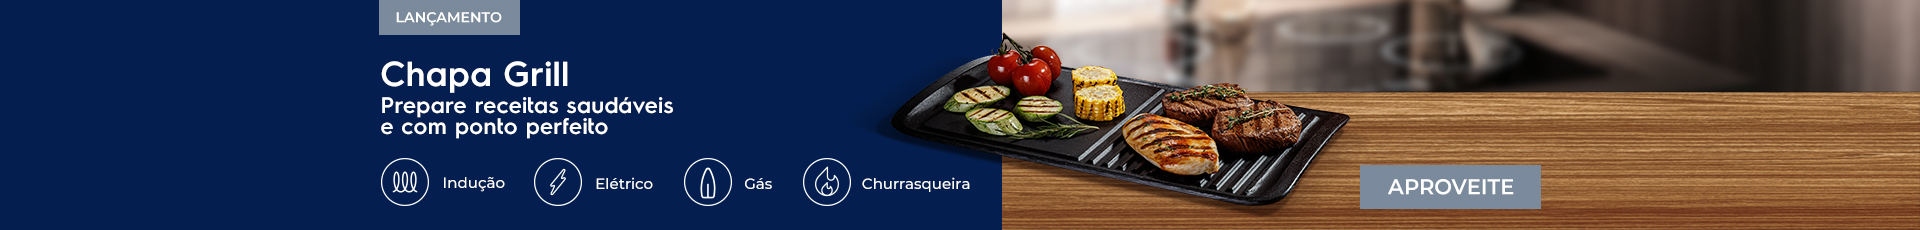 Chapa grill - Cooktops